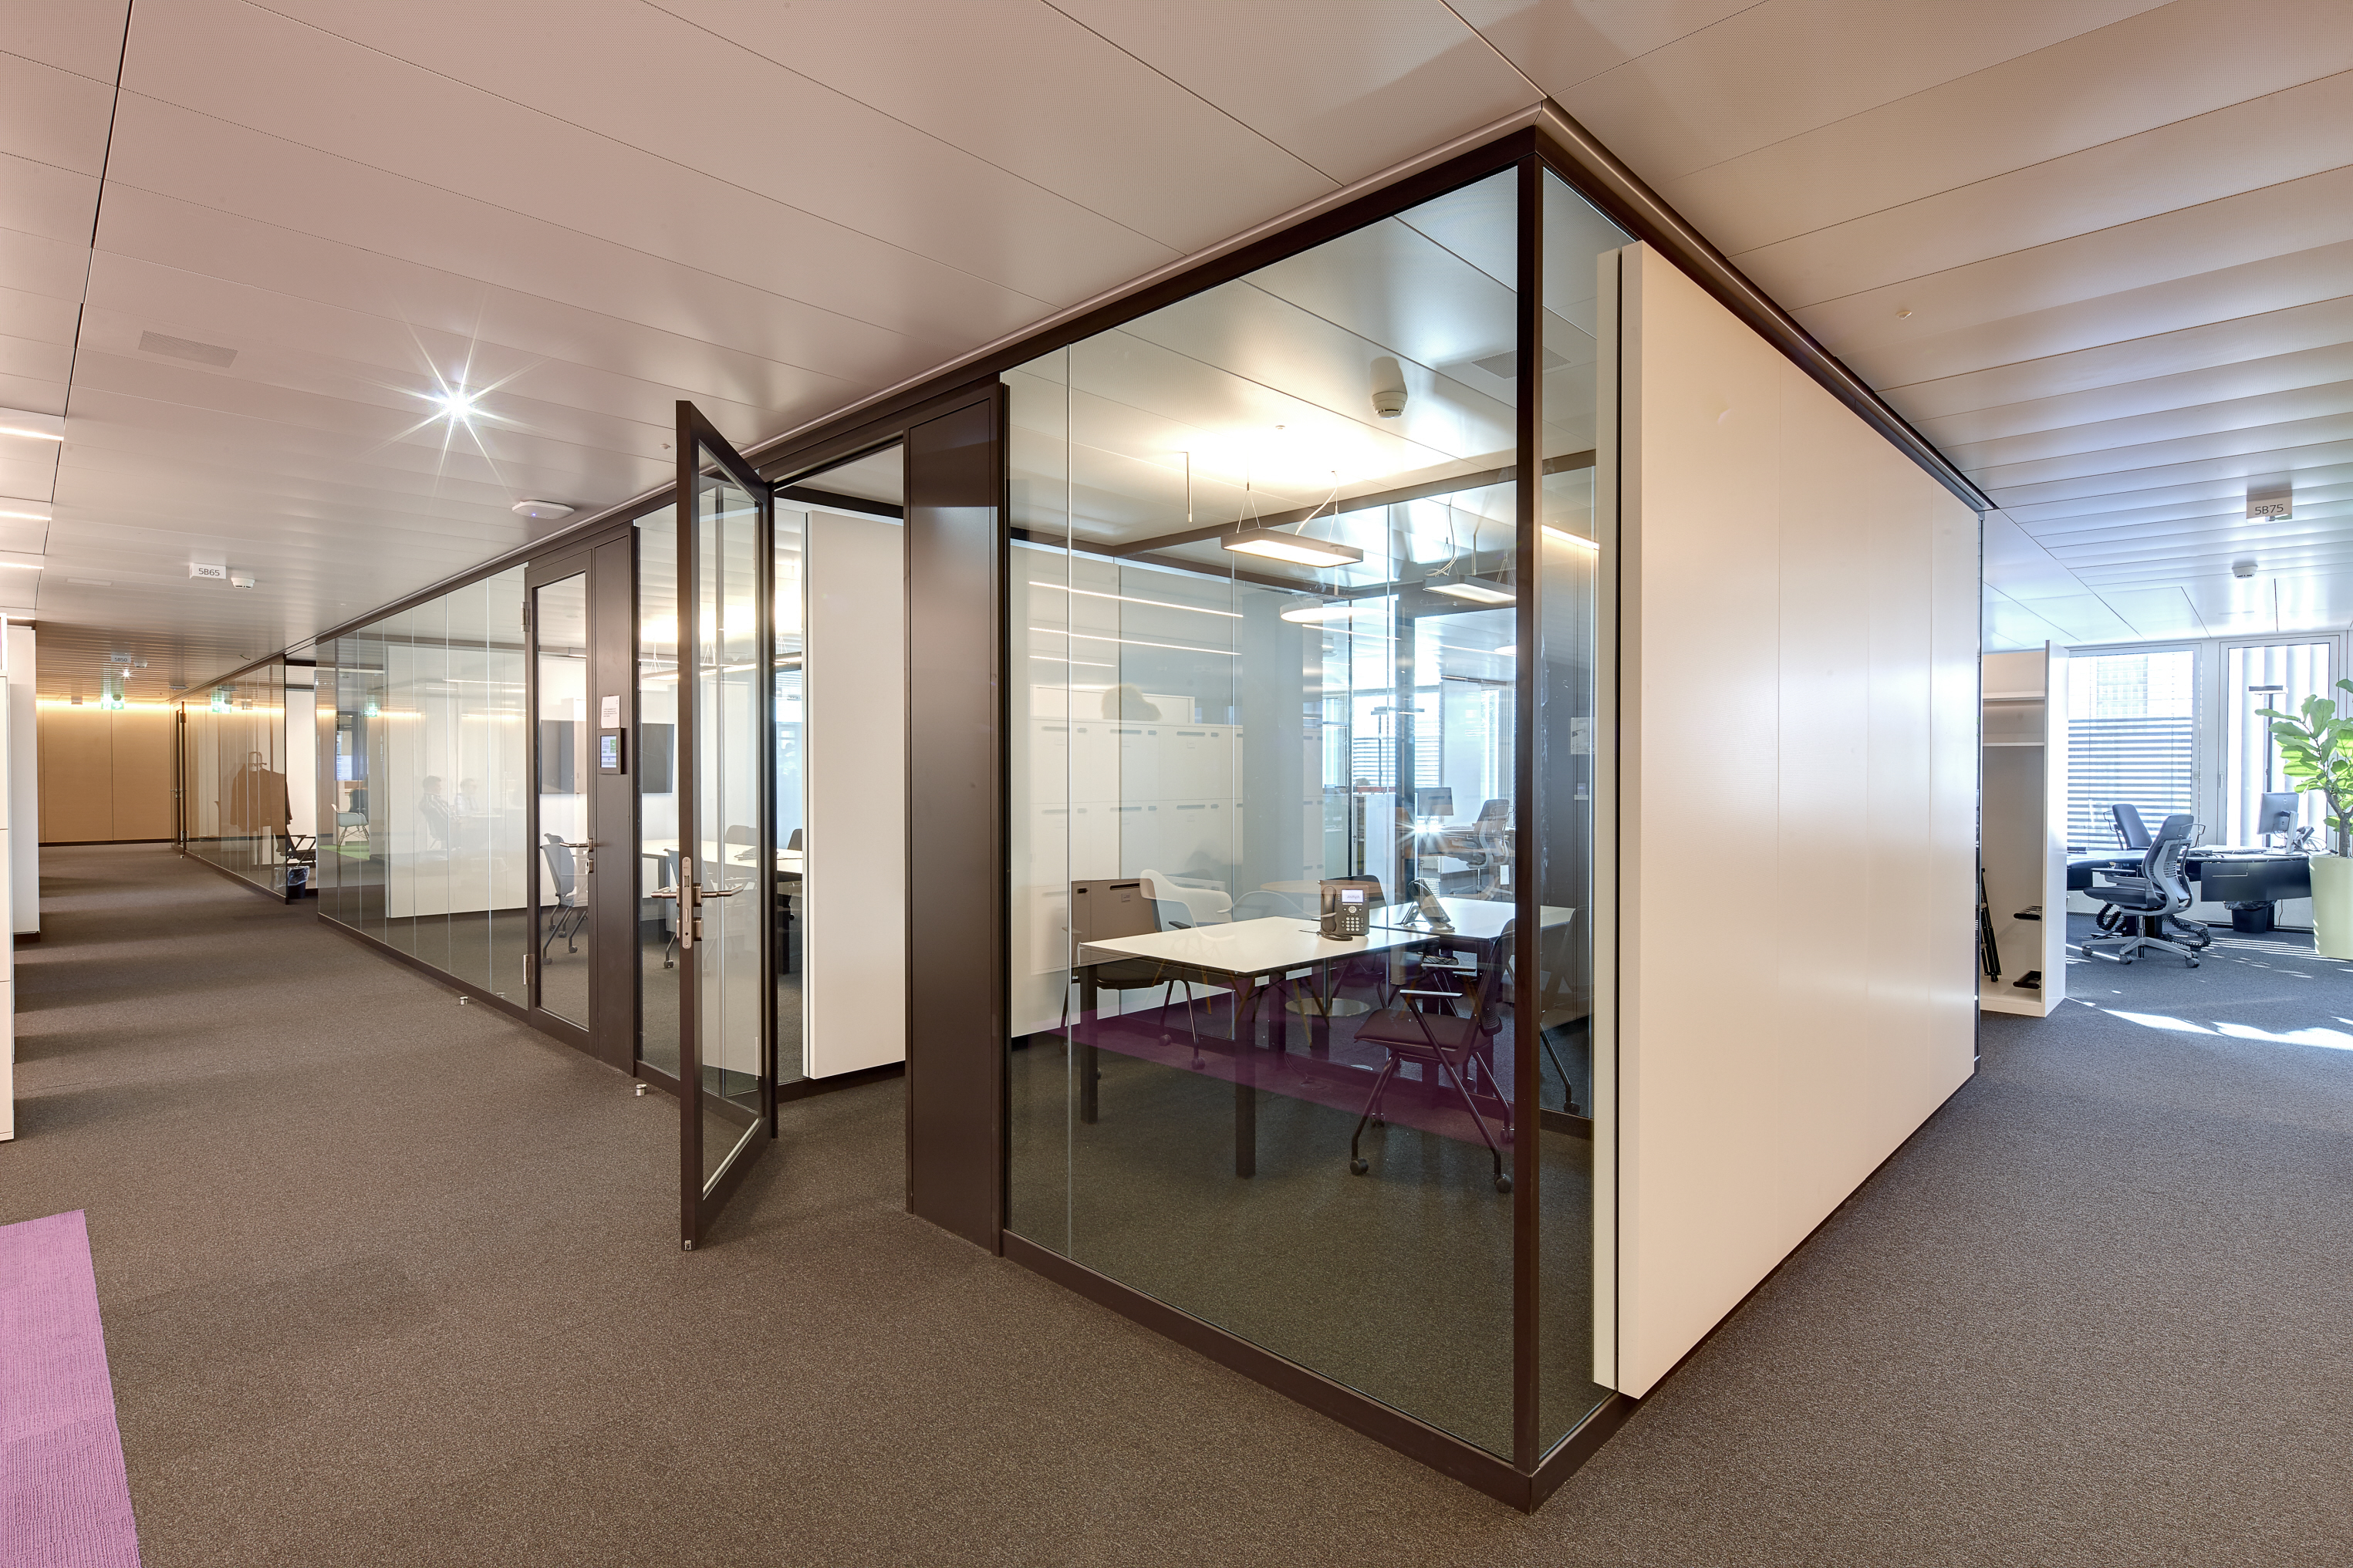 Tranquility in an open plan office stylepark Opening glass walls